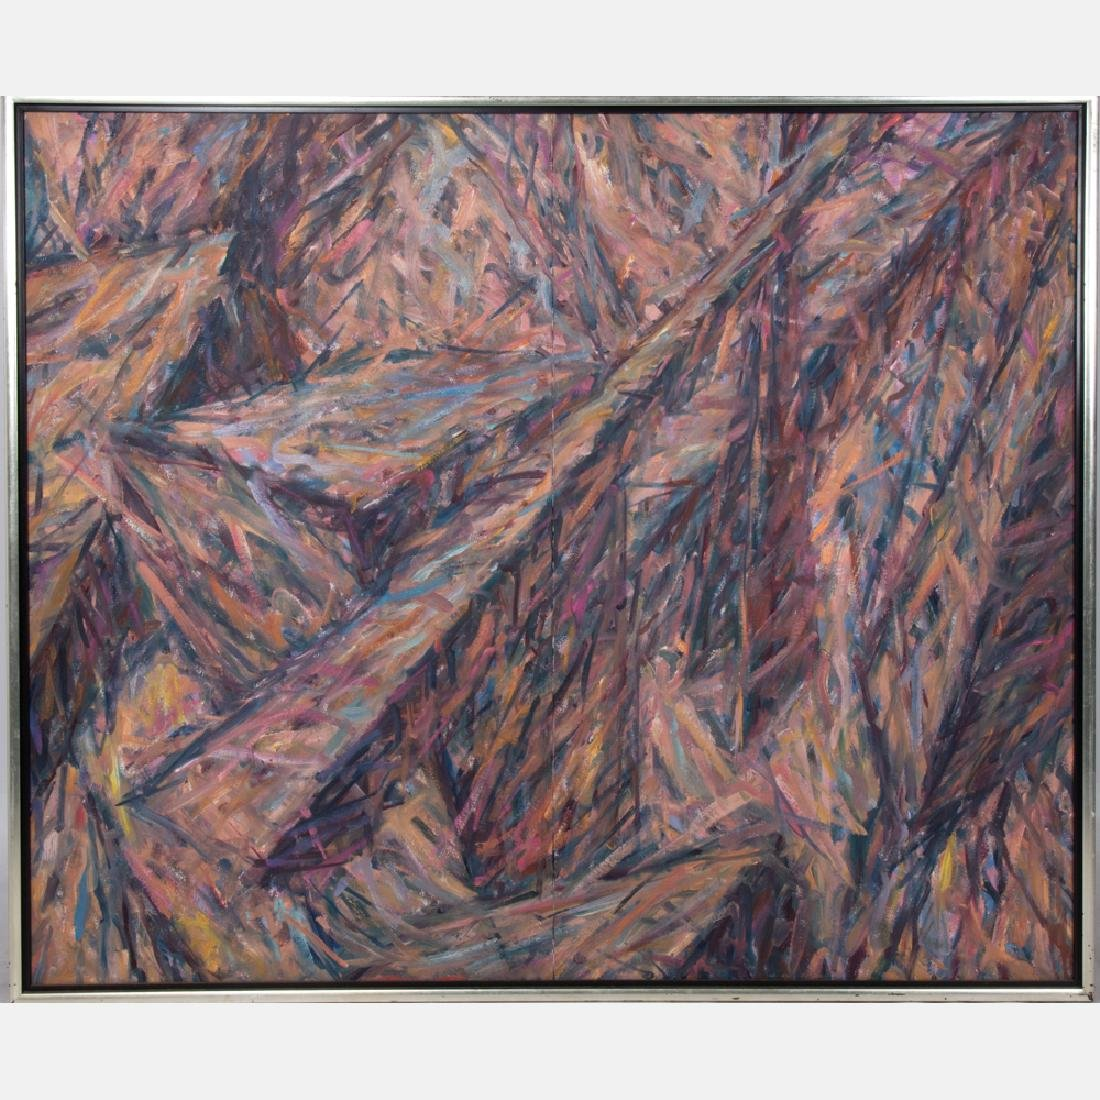 Ruth Bercaw (20th Century) Untitled (Diptych), Oil on